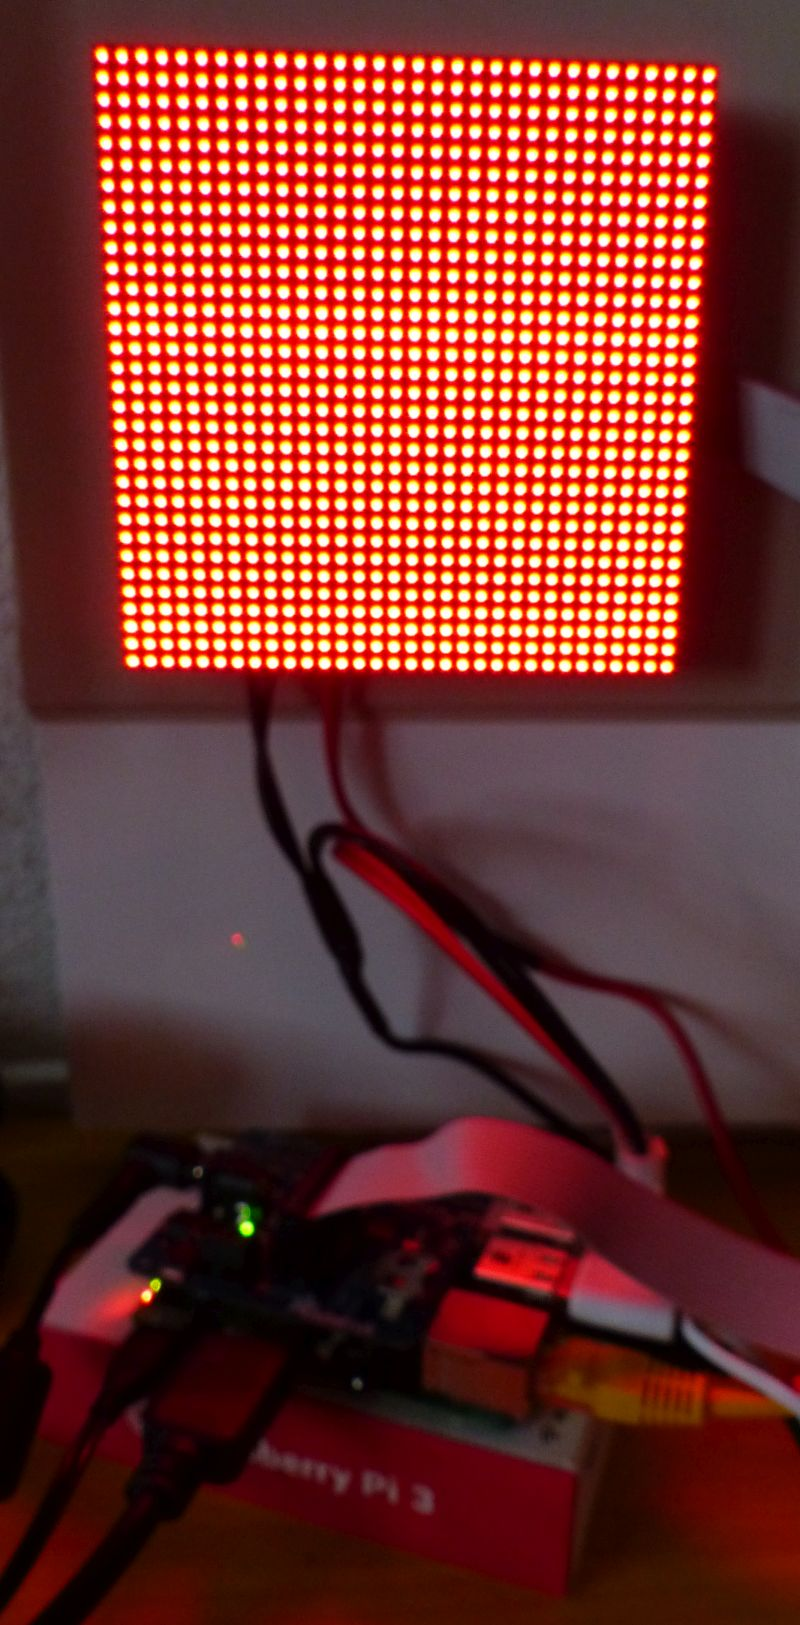 Drawing Simple Graphics on a RGB LED Matrix Panel with a